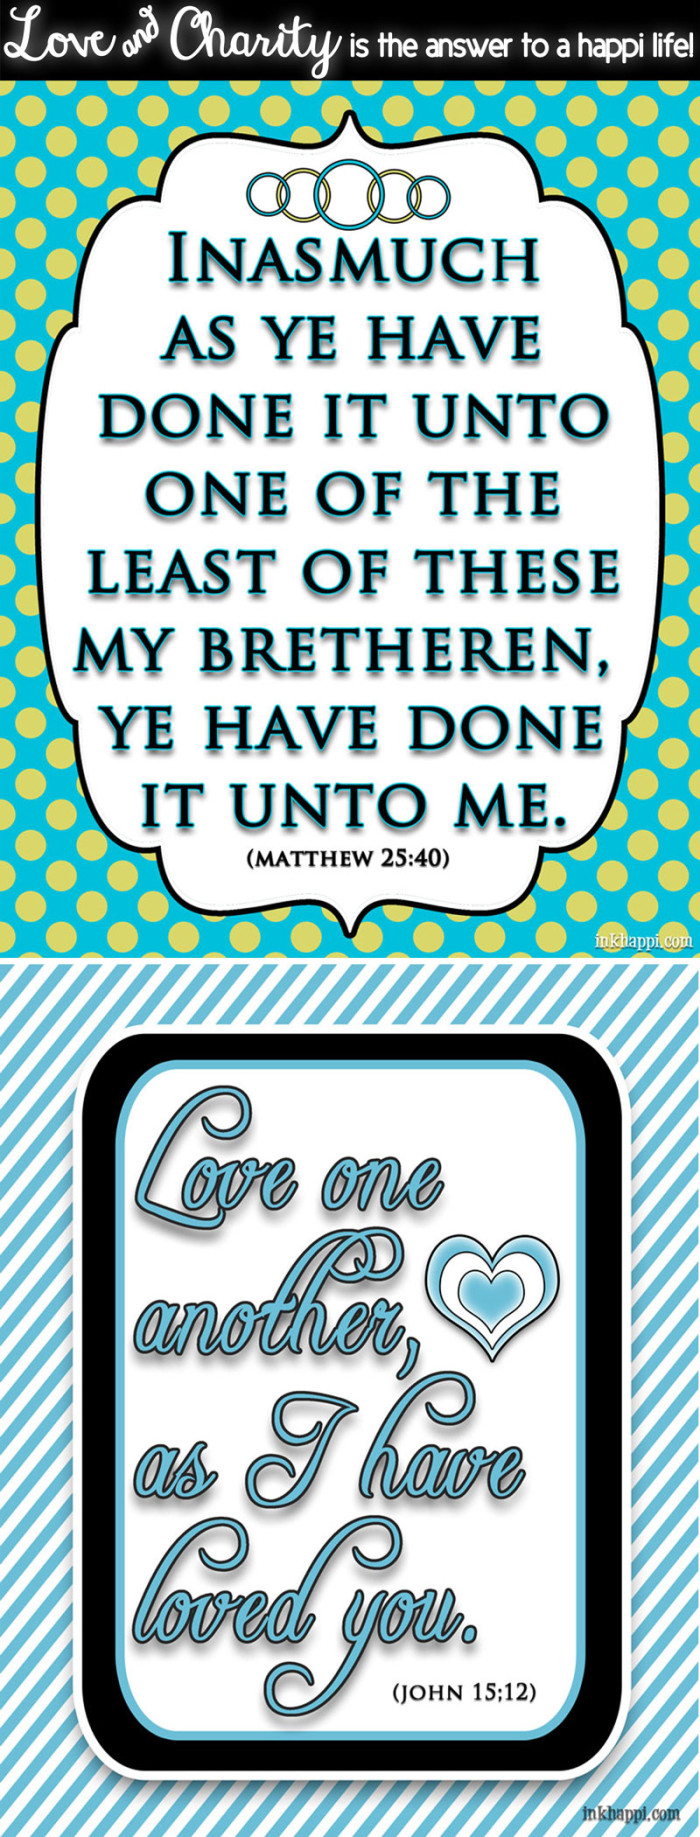 A reminder of the importance of LOVE and CHARITY. Free prints at inkhappi.com